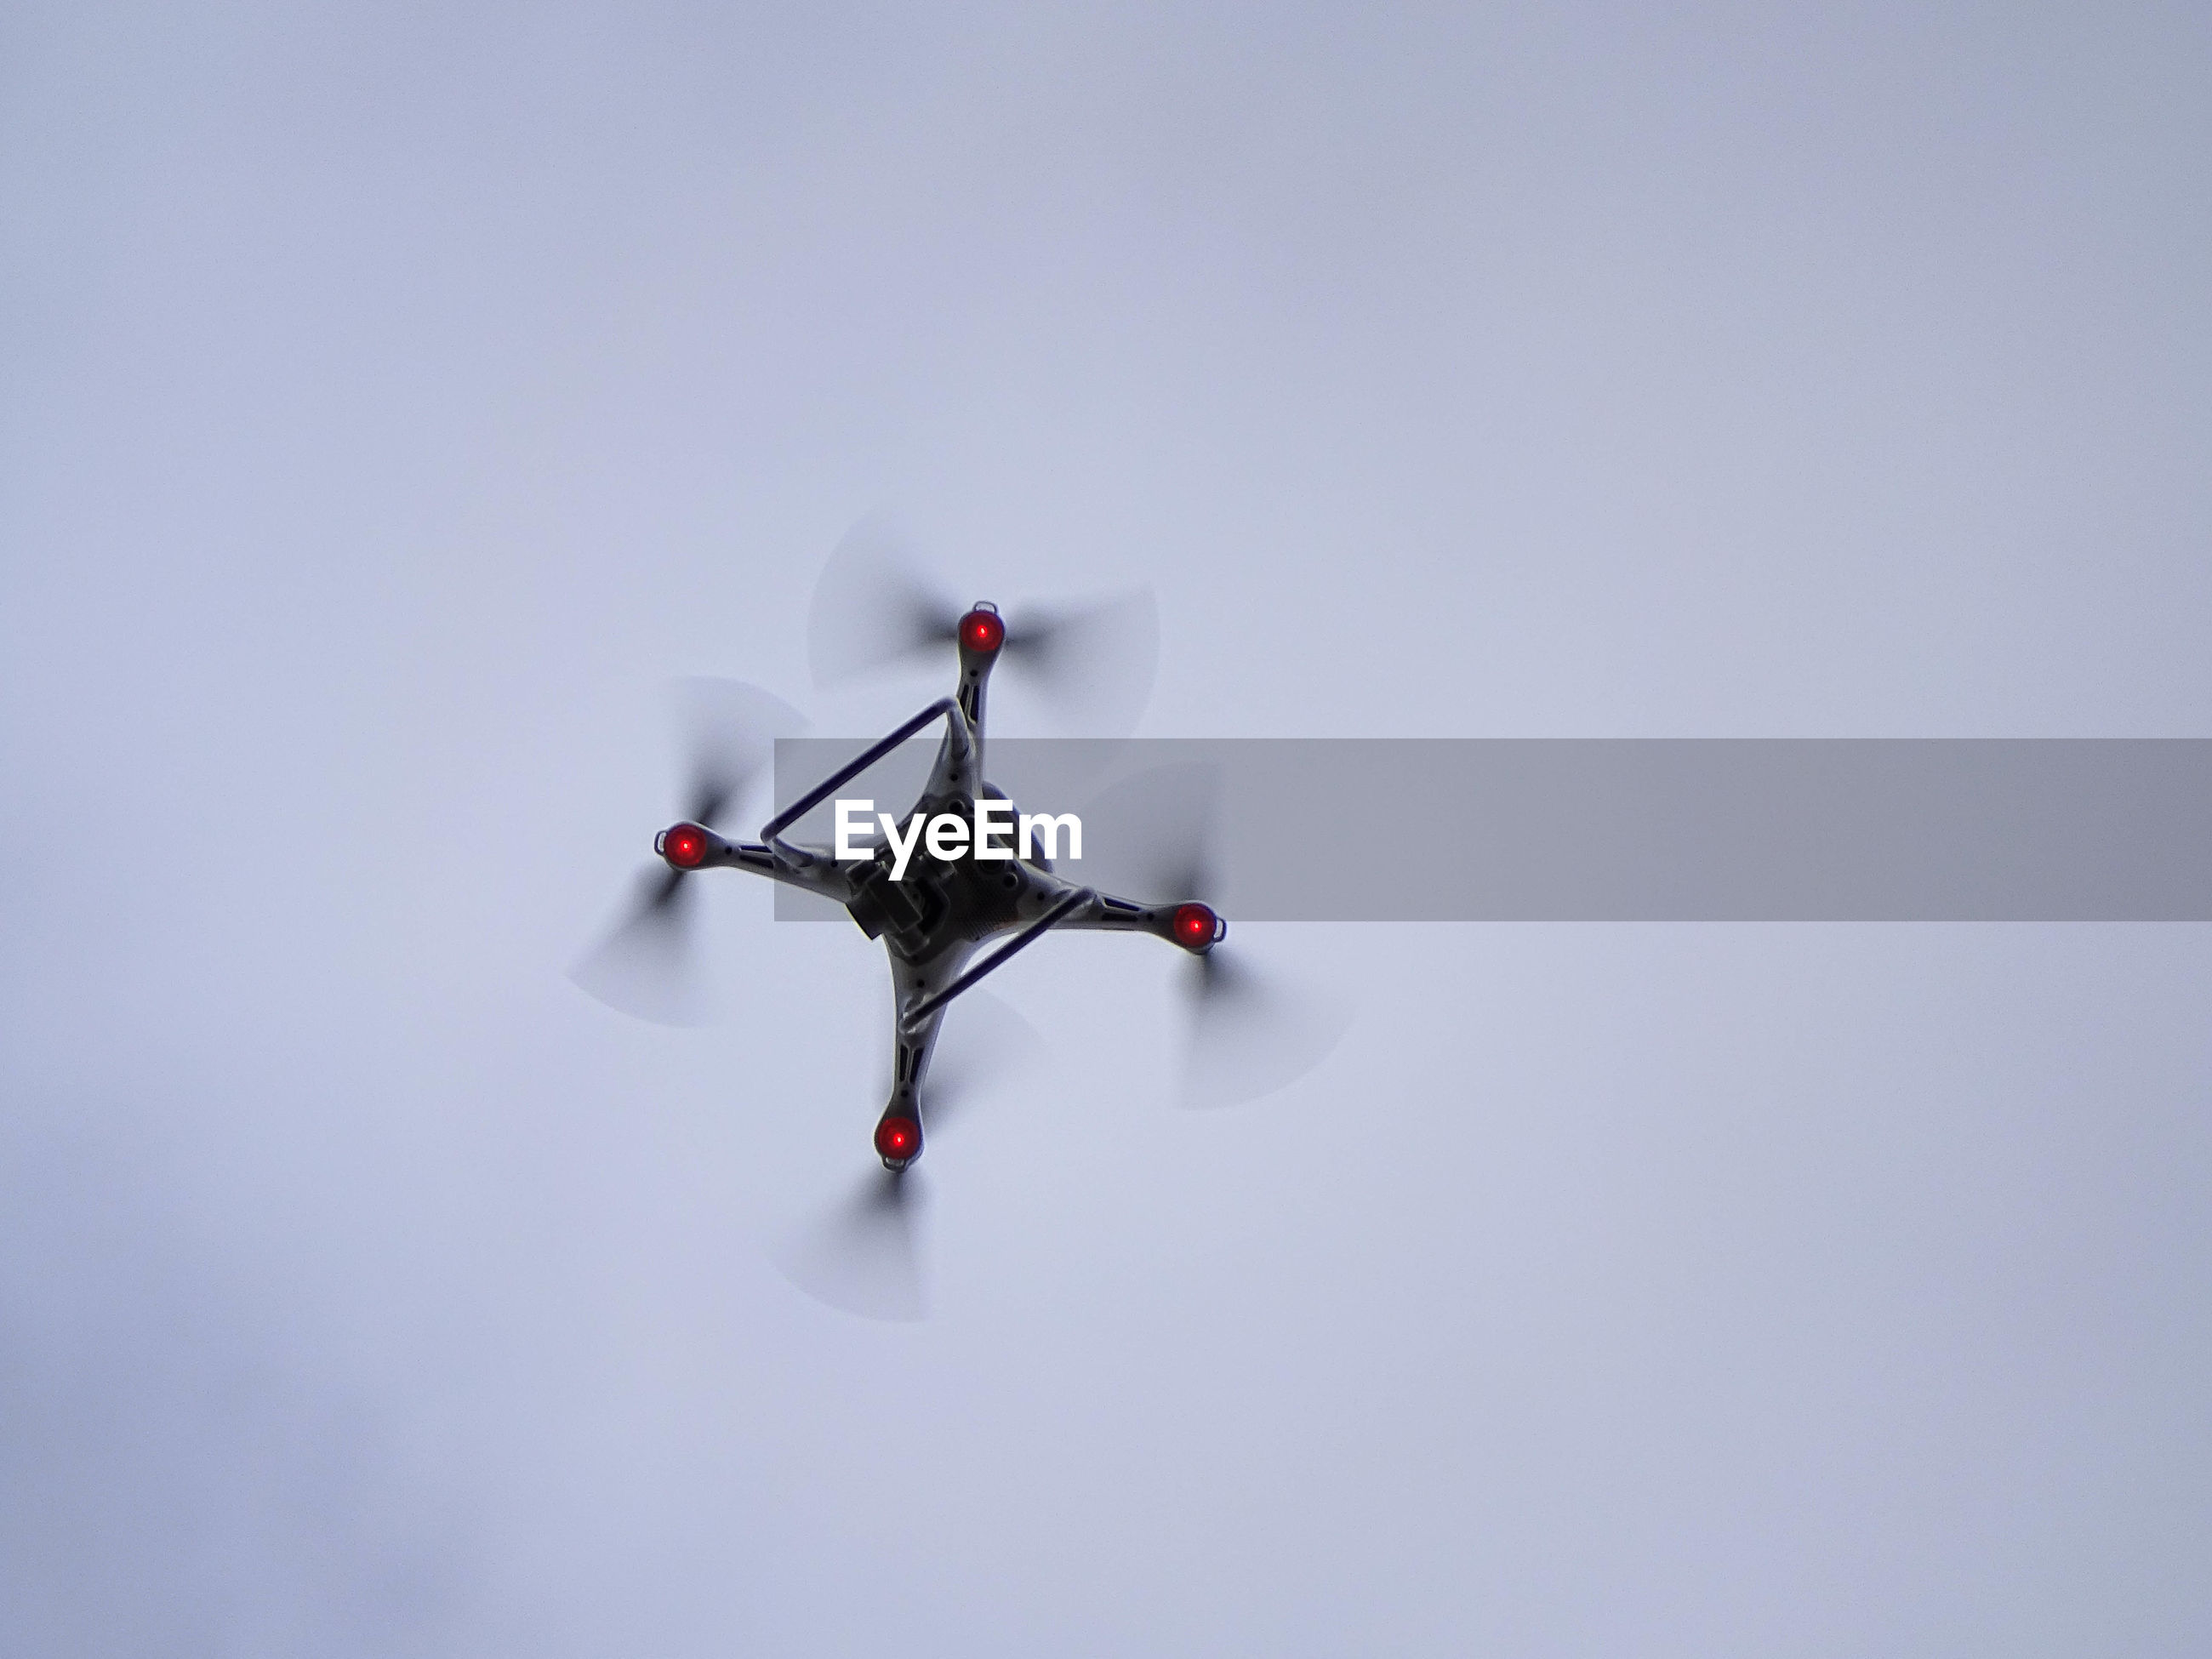 Low angle view of drone against white background